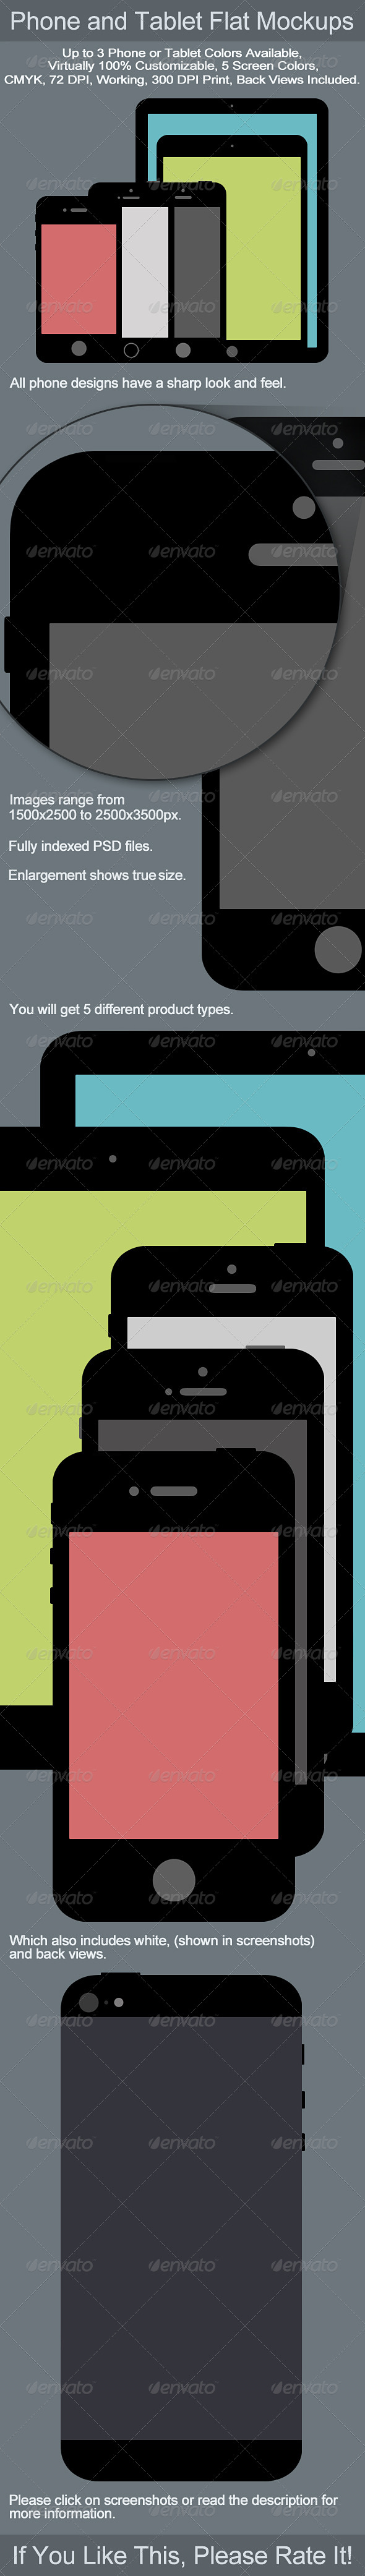 Phone and Tablet Flat Mockups